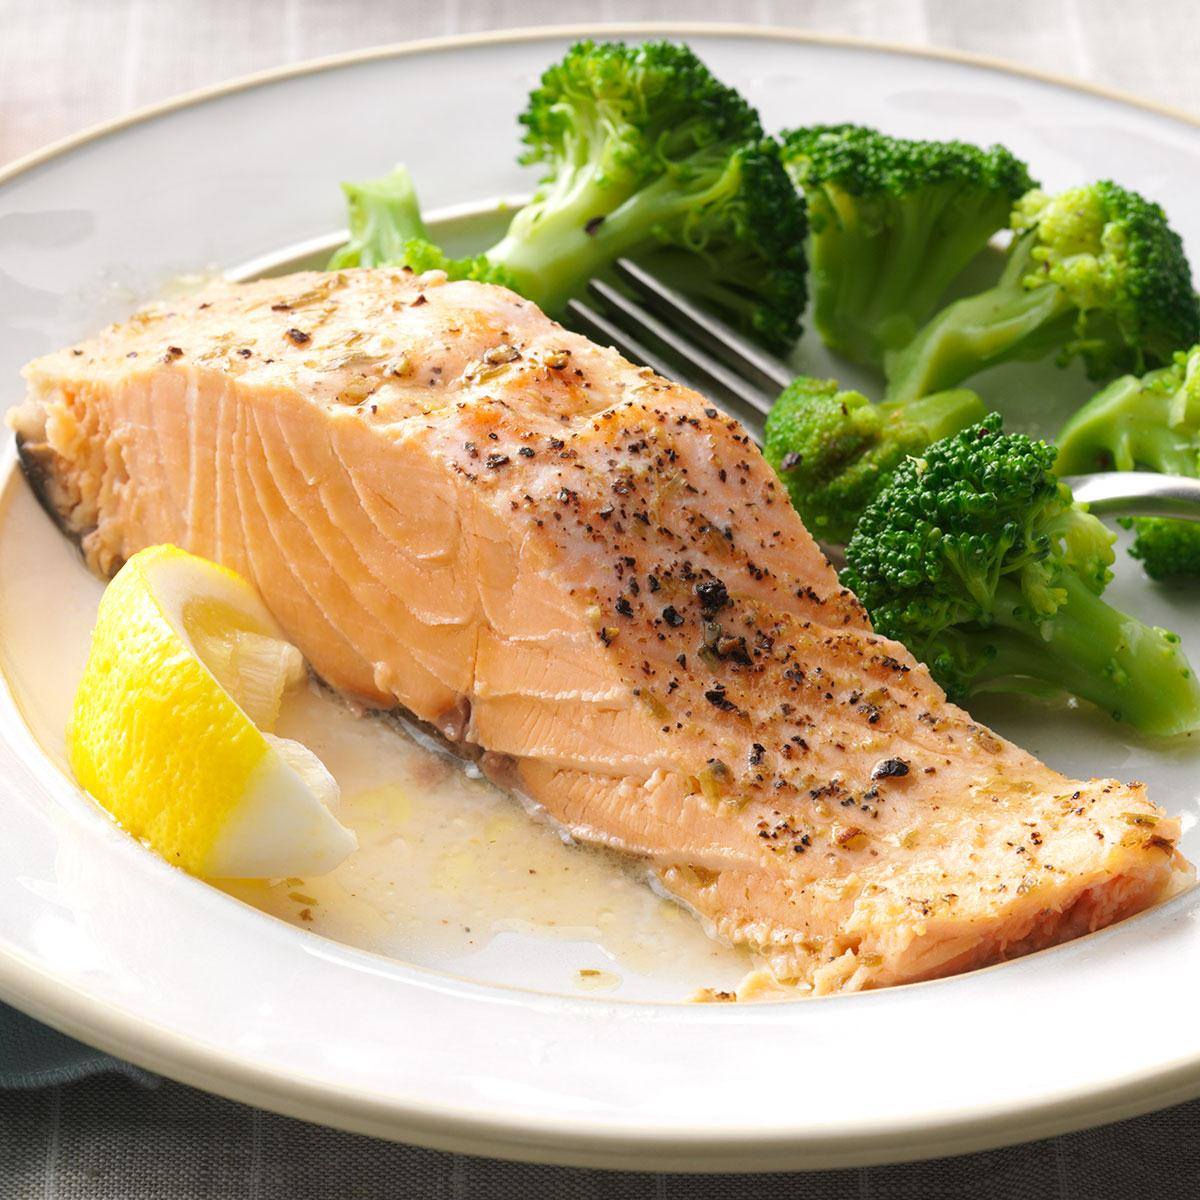 Baked Salmon Recipe: How to Make It | Taste of Home